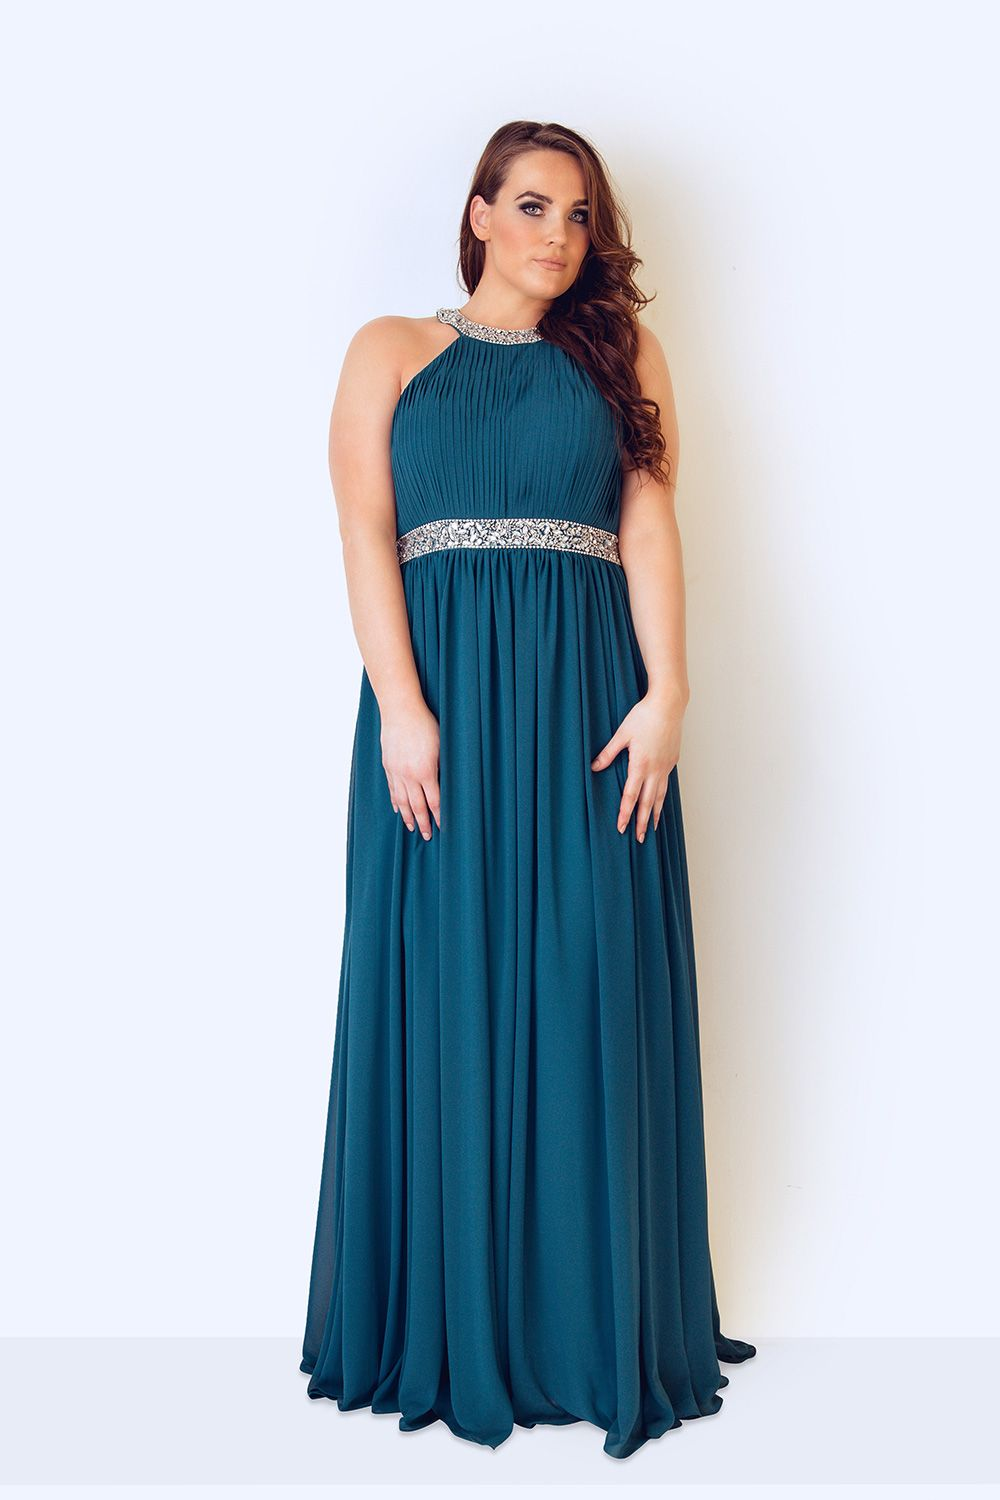 Plus Size evening gowns | Plus size jersey evening dress Evening ...